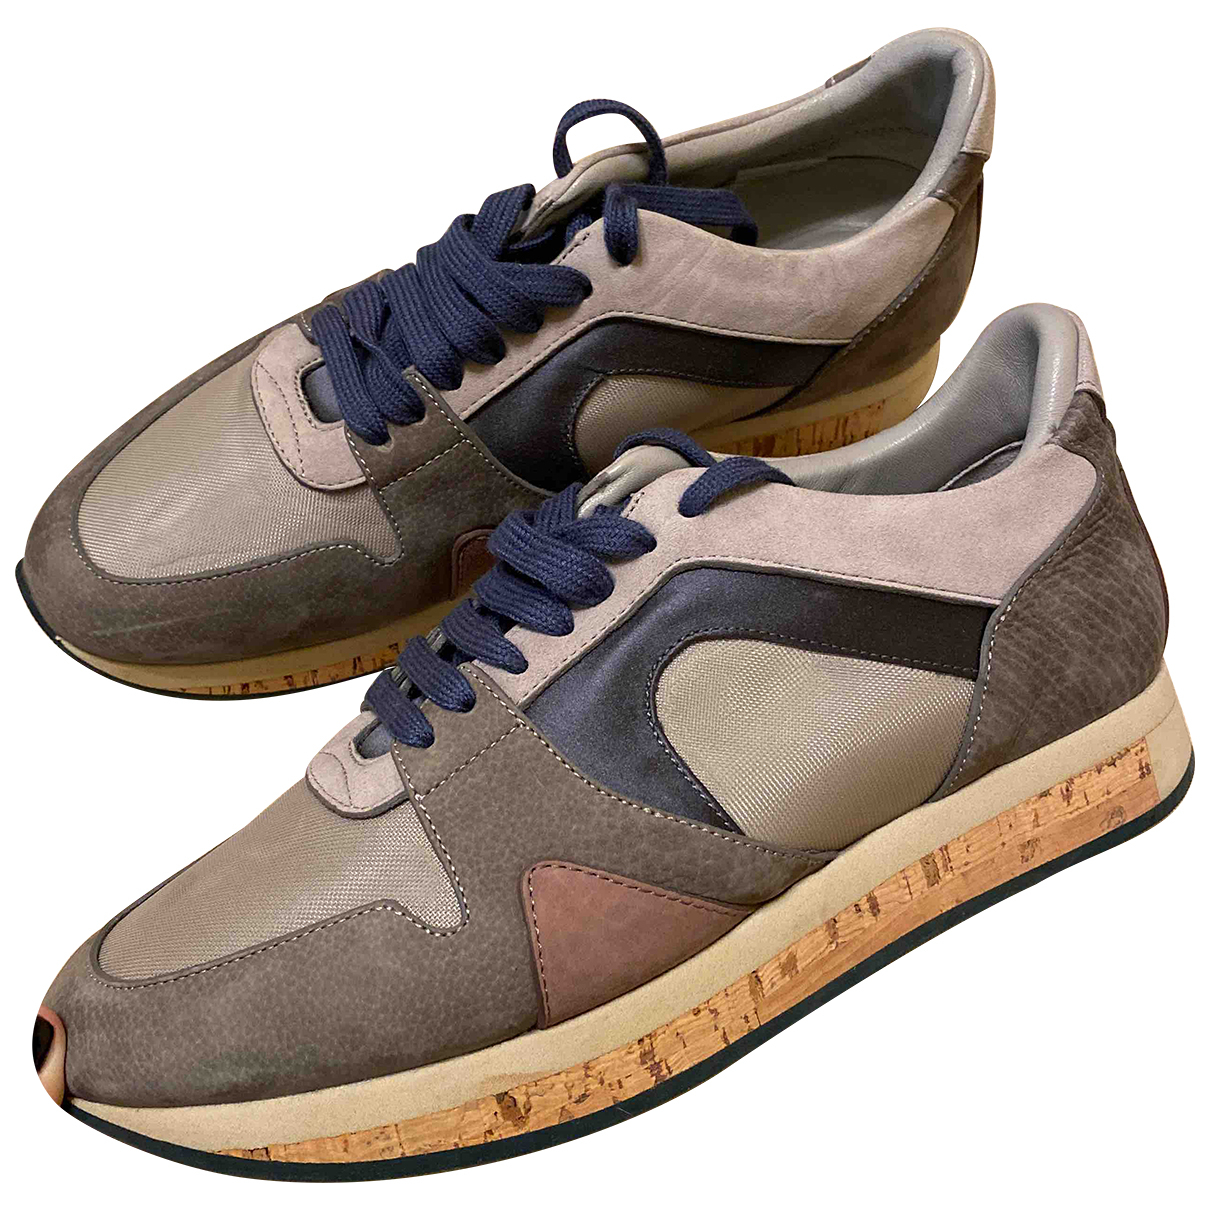 Burberry N Multicolour Leather Trainers for Women 39 EU